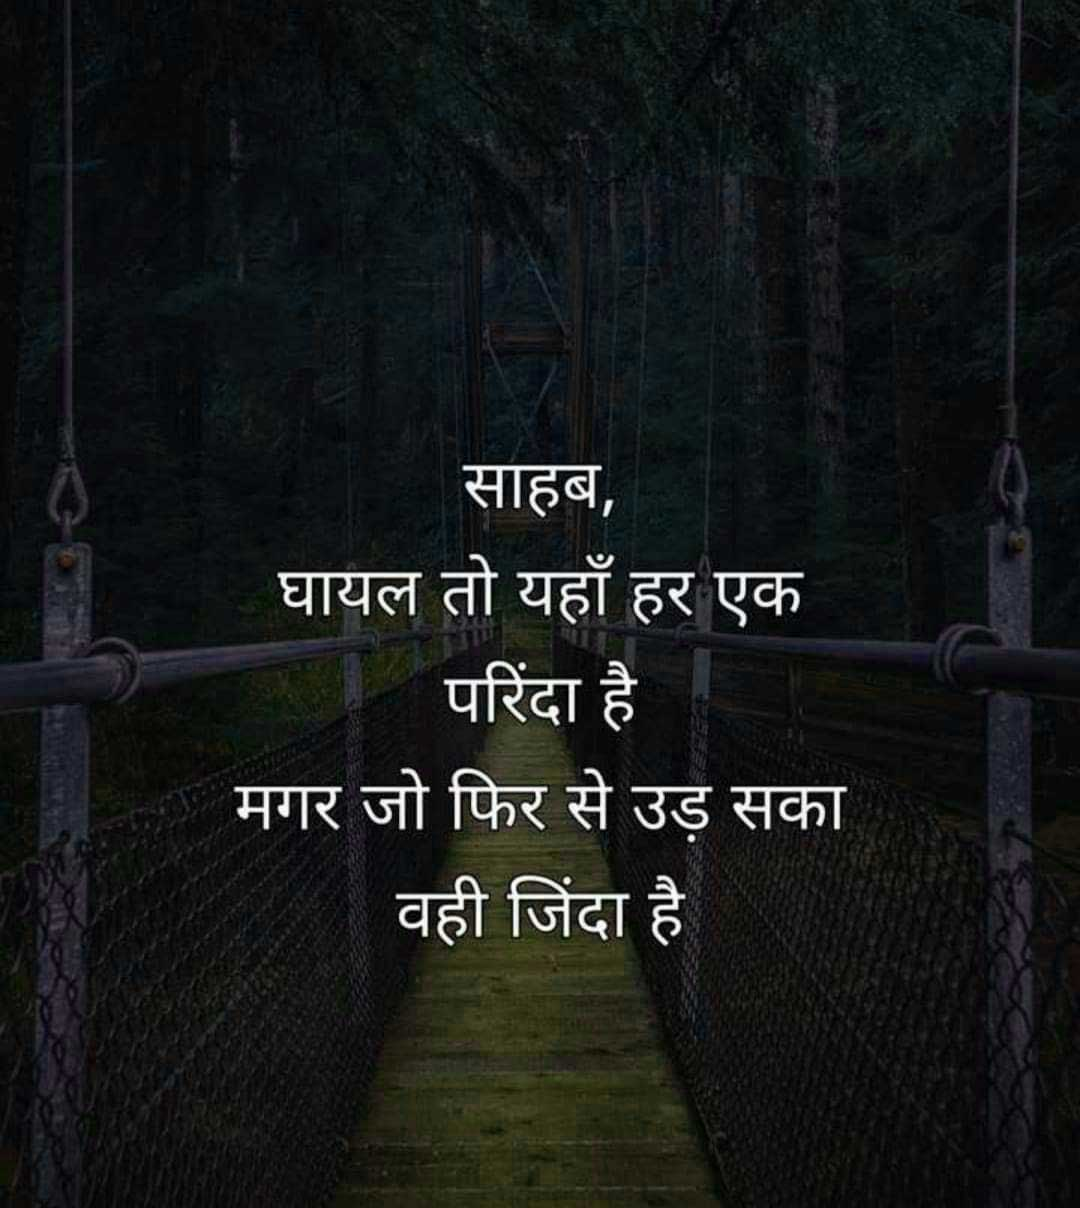 Hindi Quotes Whatsapp DP Pictures Free Hd